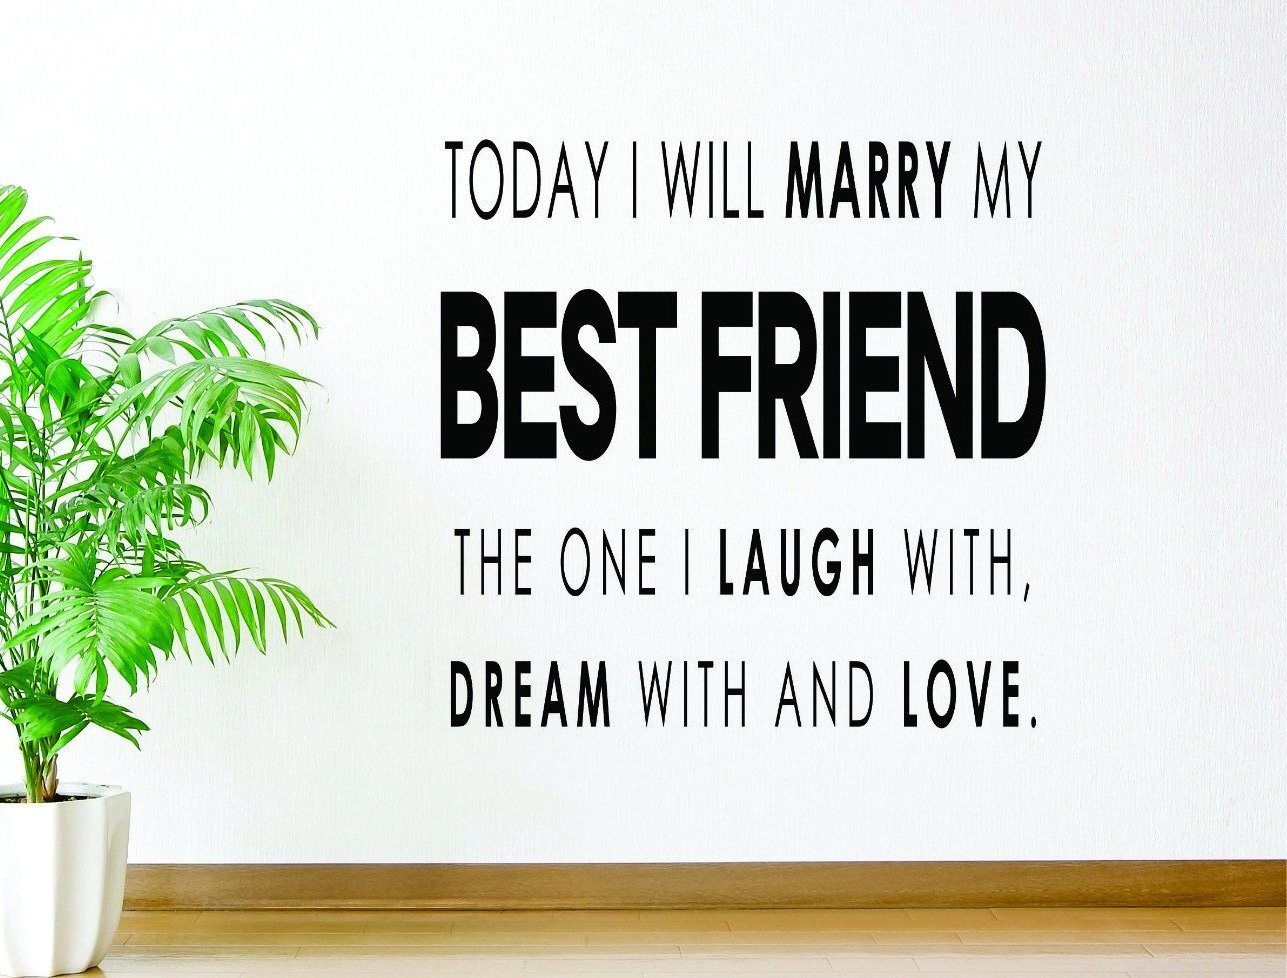 Design with Vinyl RAD 688 2 Today I Will Marry My Bestfriend The One I Laugh With 16 x 16 Black Dream with And Love Wedding Marriage Quote Vinyl Wall Decal